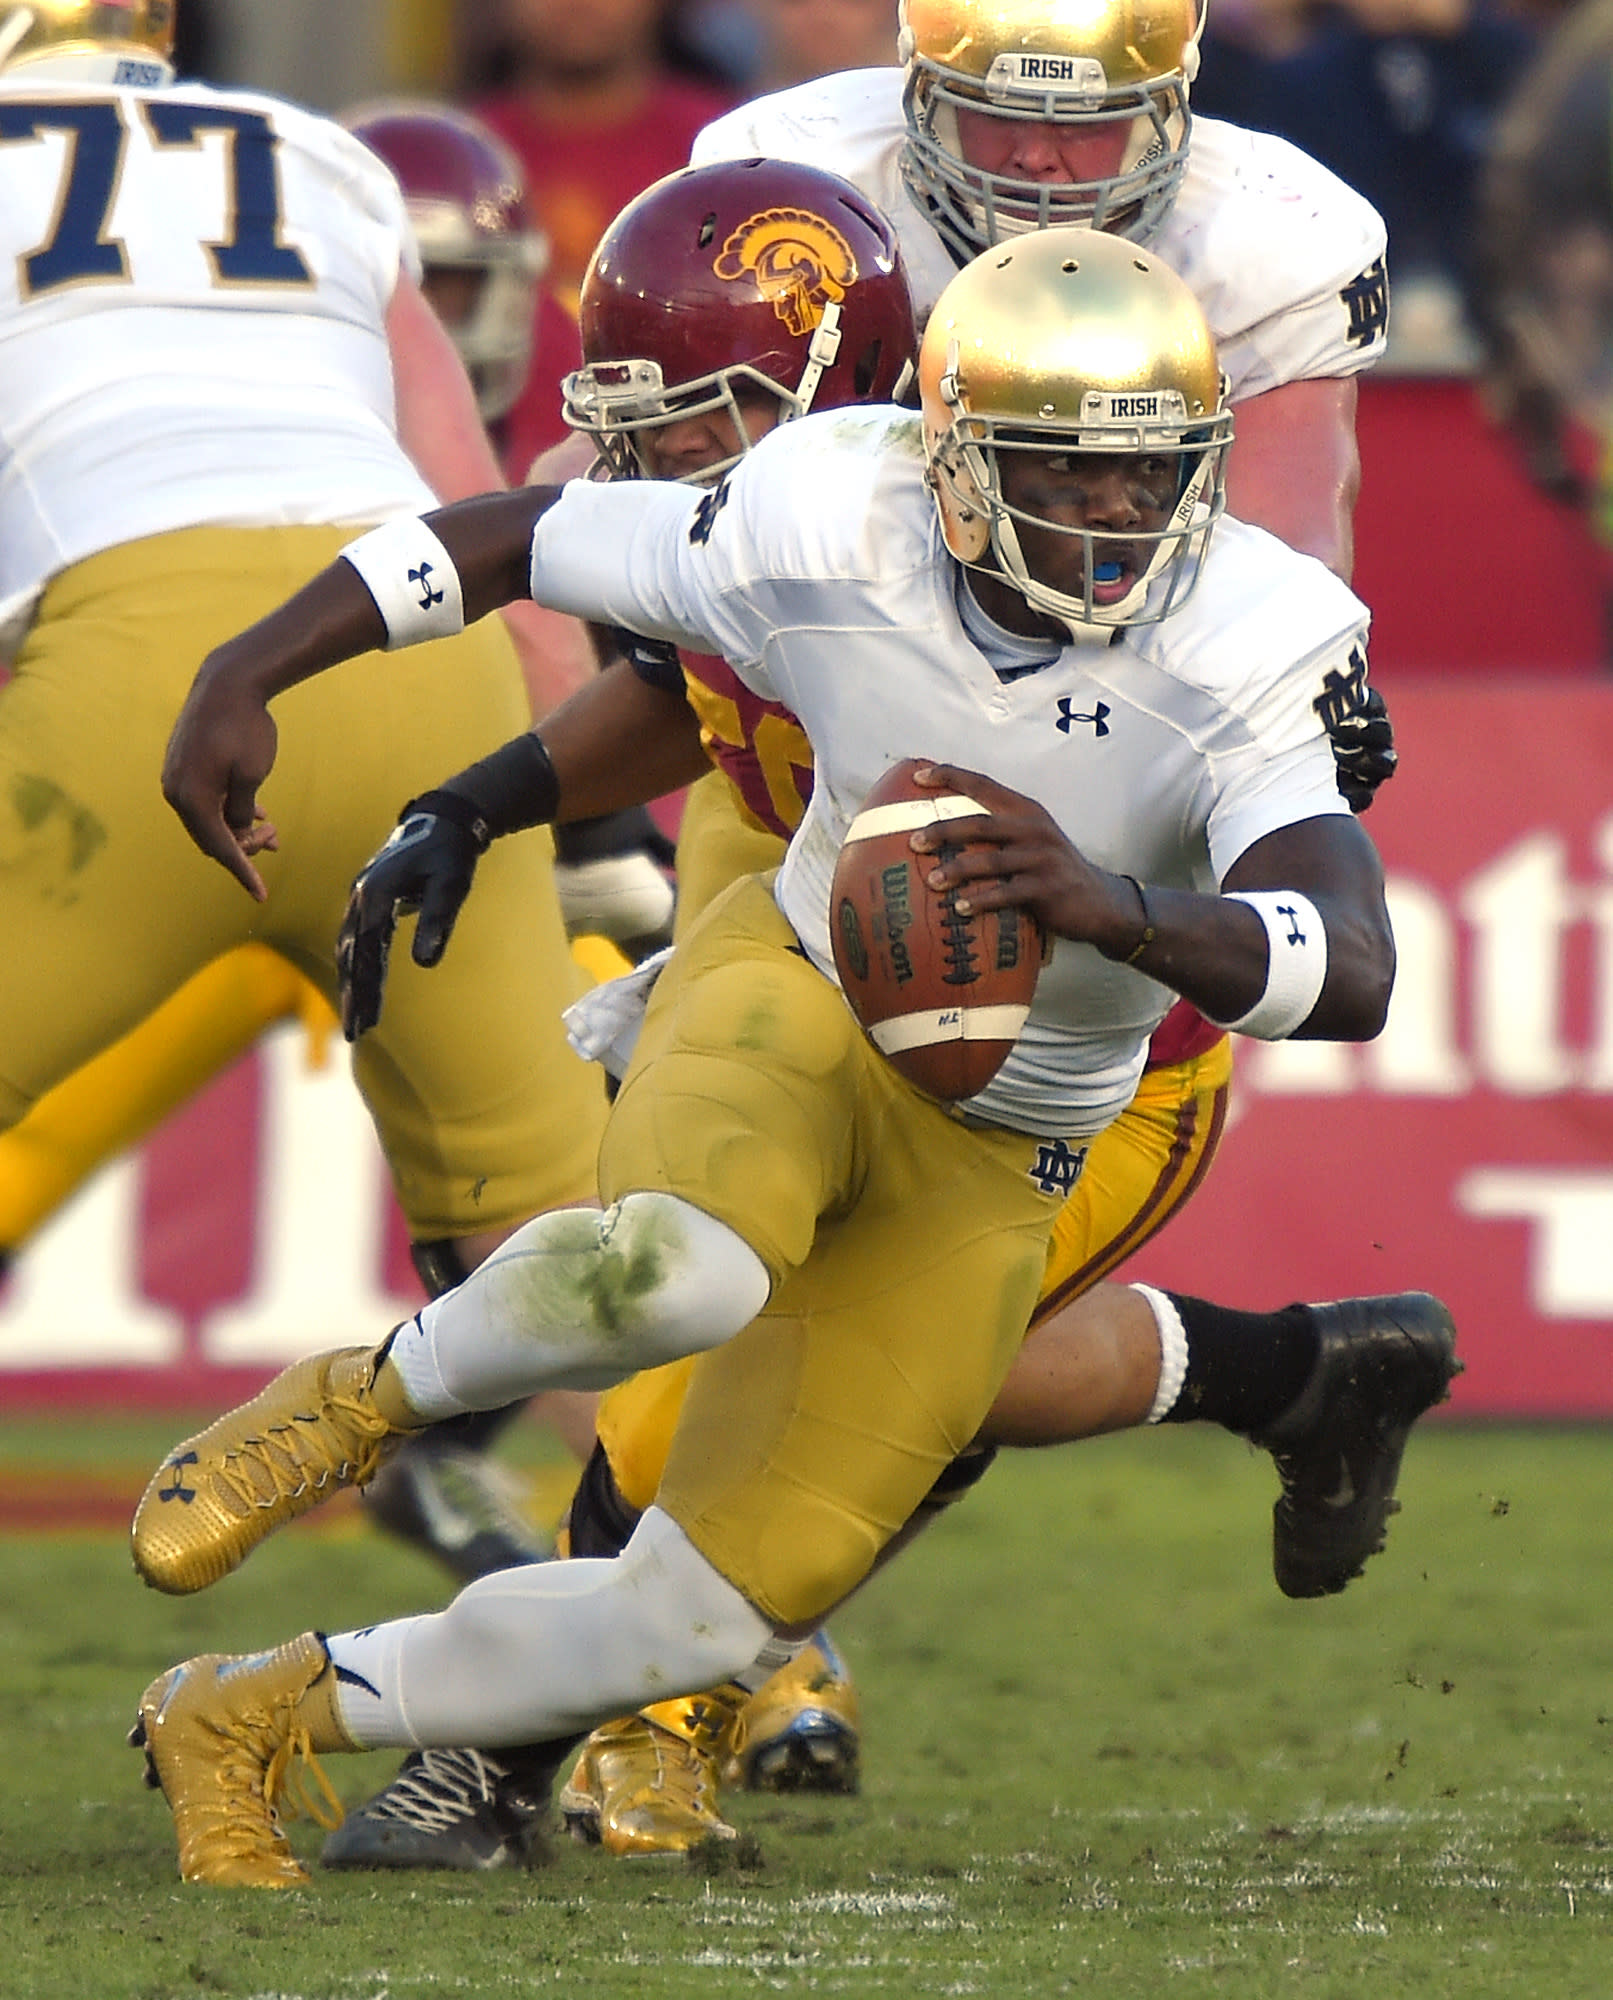 Zaire wants Notre Dame's starting quarterback spot